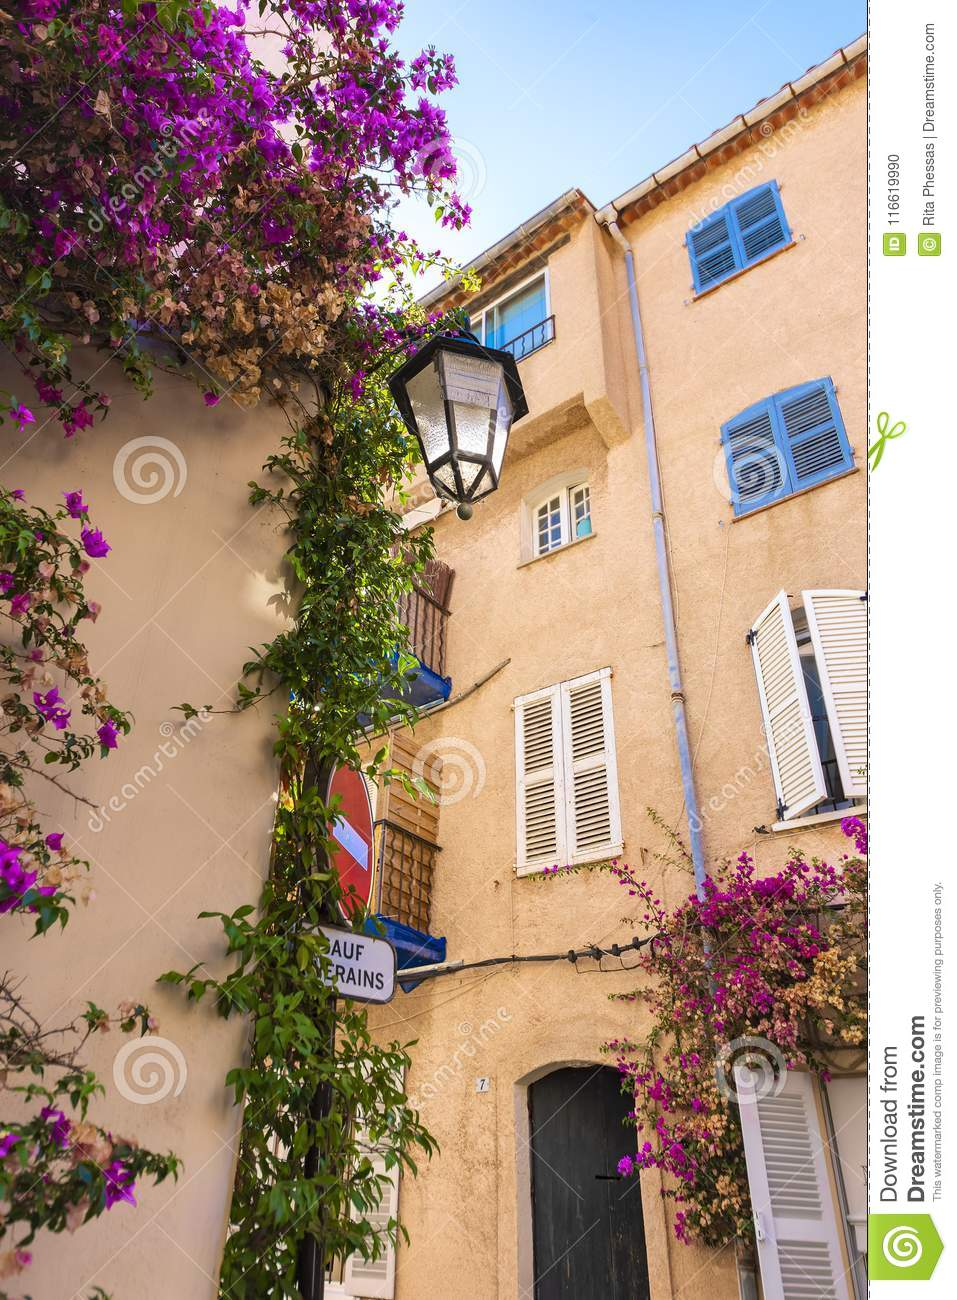 Close-up of a typical French Mediterranean corner, with its pink facades and buildings, tendrils with purple oliander flowers an o